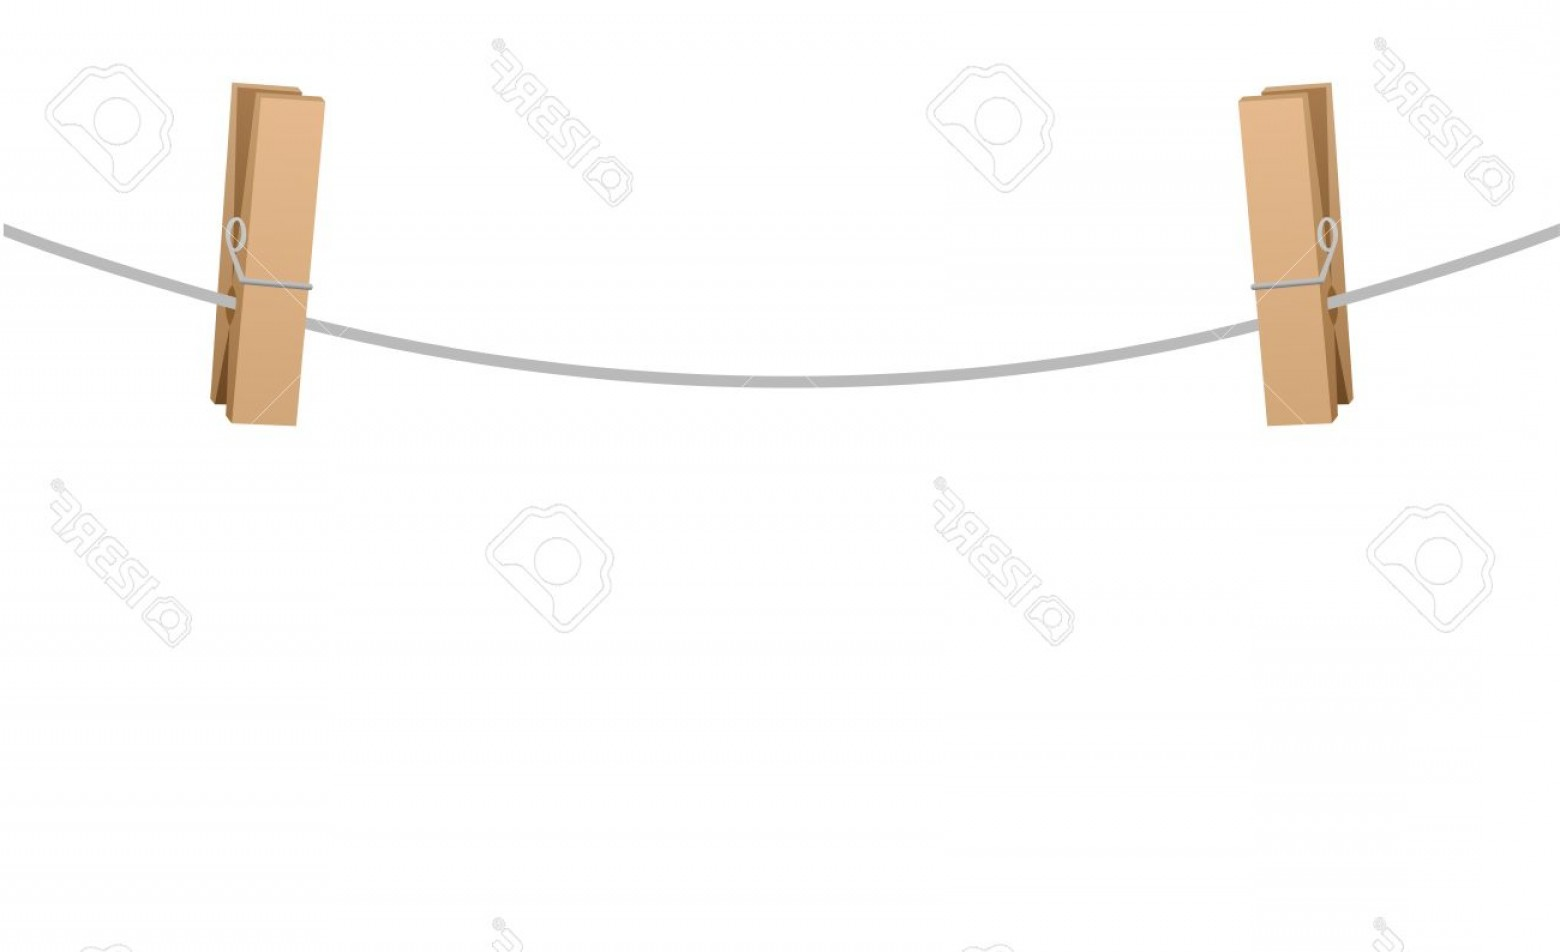 Vector Clothes Pins: Photostock Vector Two Wooden Clothespins Clipped On A Clothesline Rope